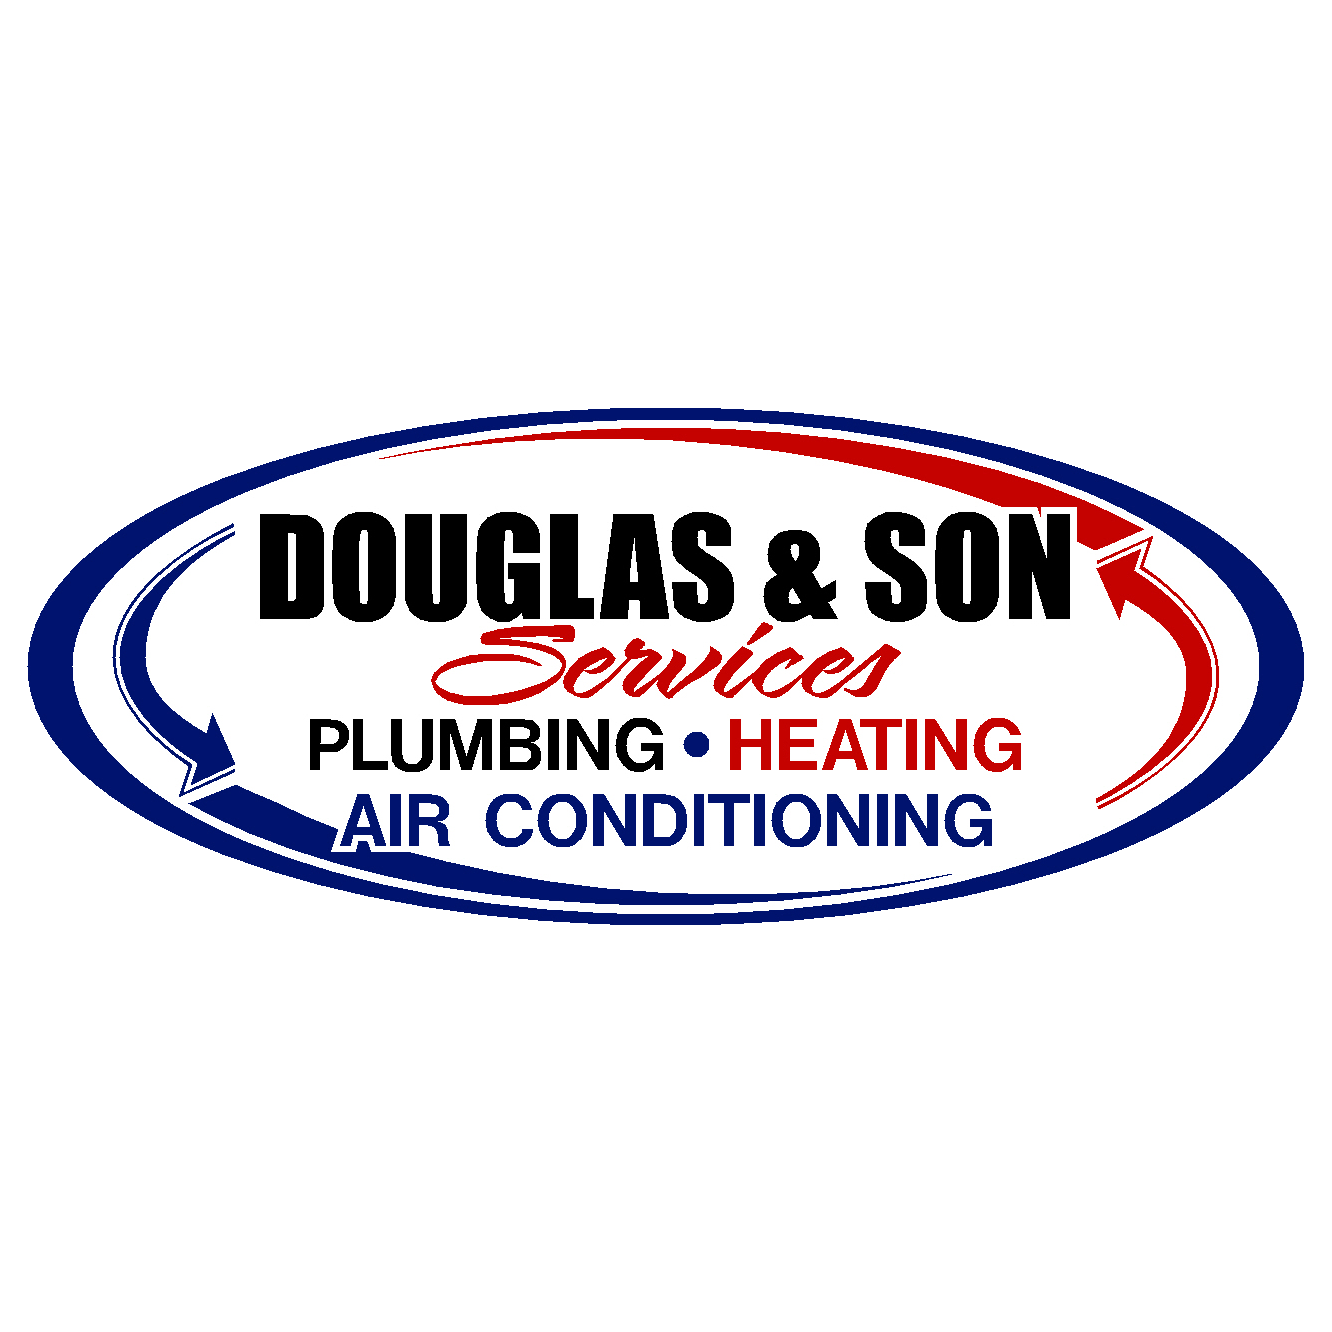 Douglas & Son Services